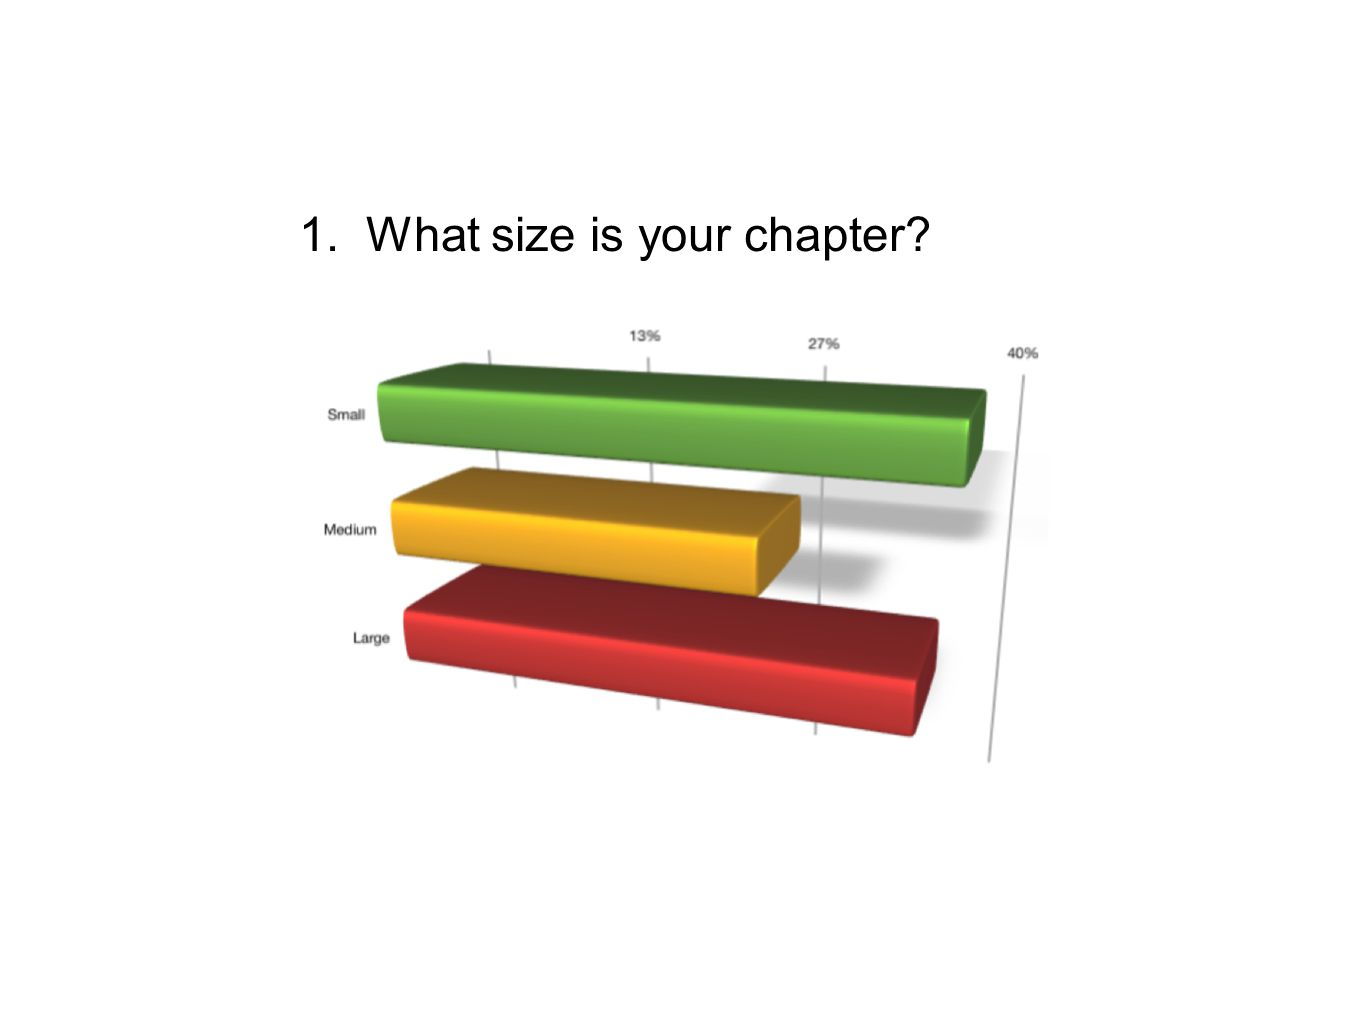 1. What size is your chapter?